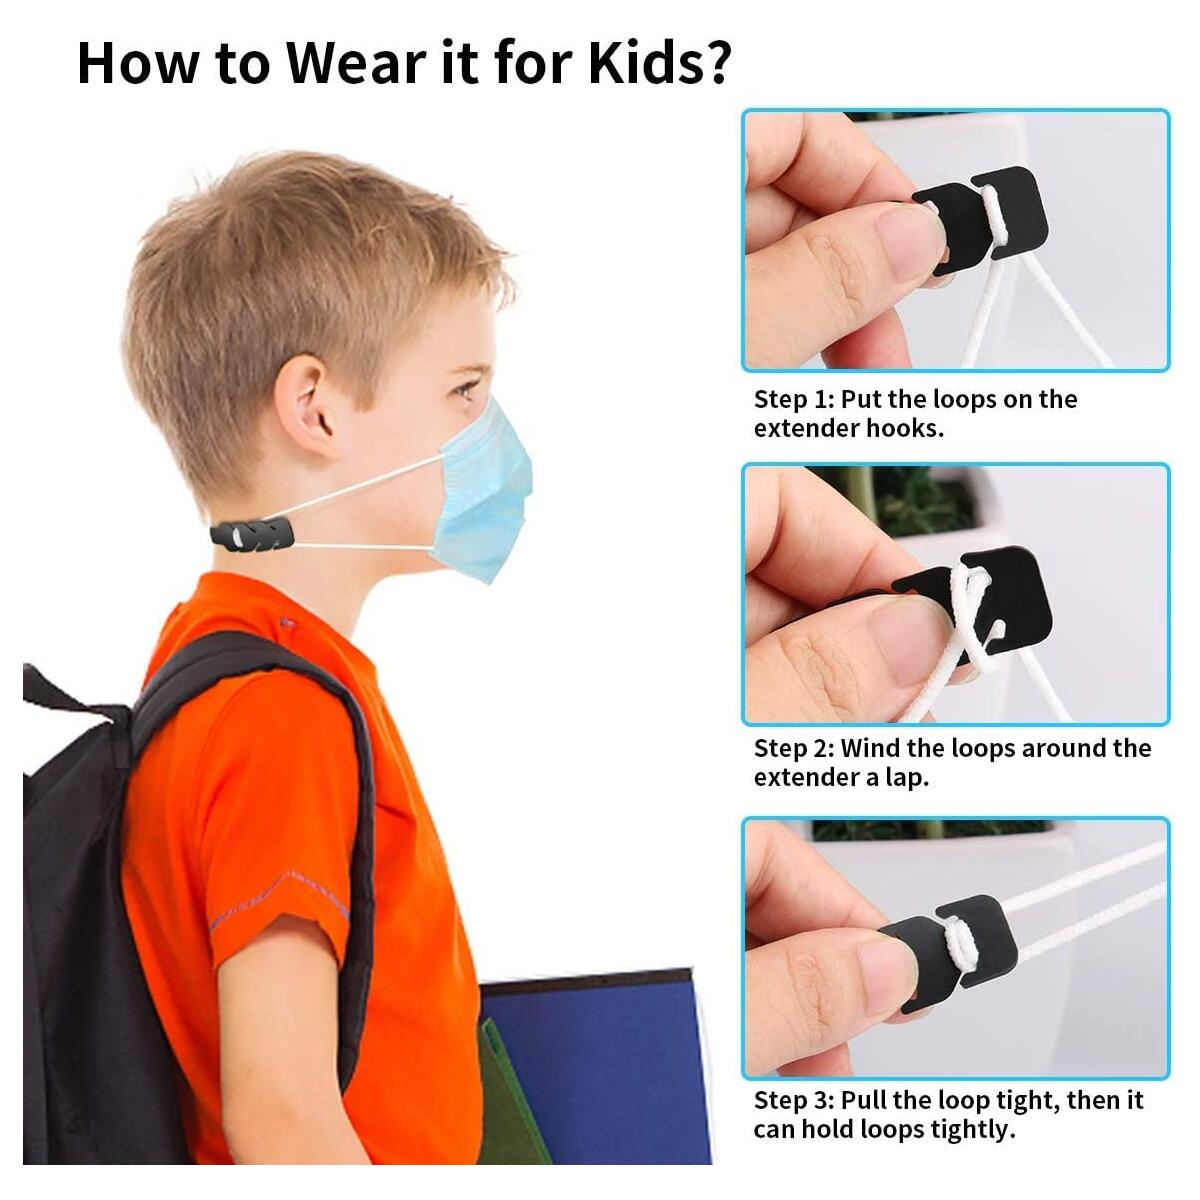 Silicone Mask Strap Extender, 10pcs Adjustable Anti-Slip Mask Extender, Relieve Ear Pain, Anti-Tightening Soft Ear Saver Protector, Elastic Ear Strap Hook Holder for Kids & Adults - Black